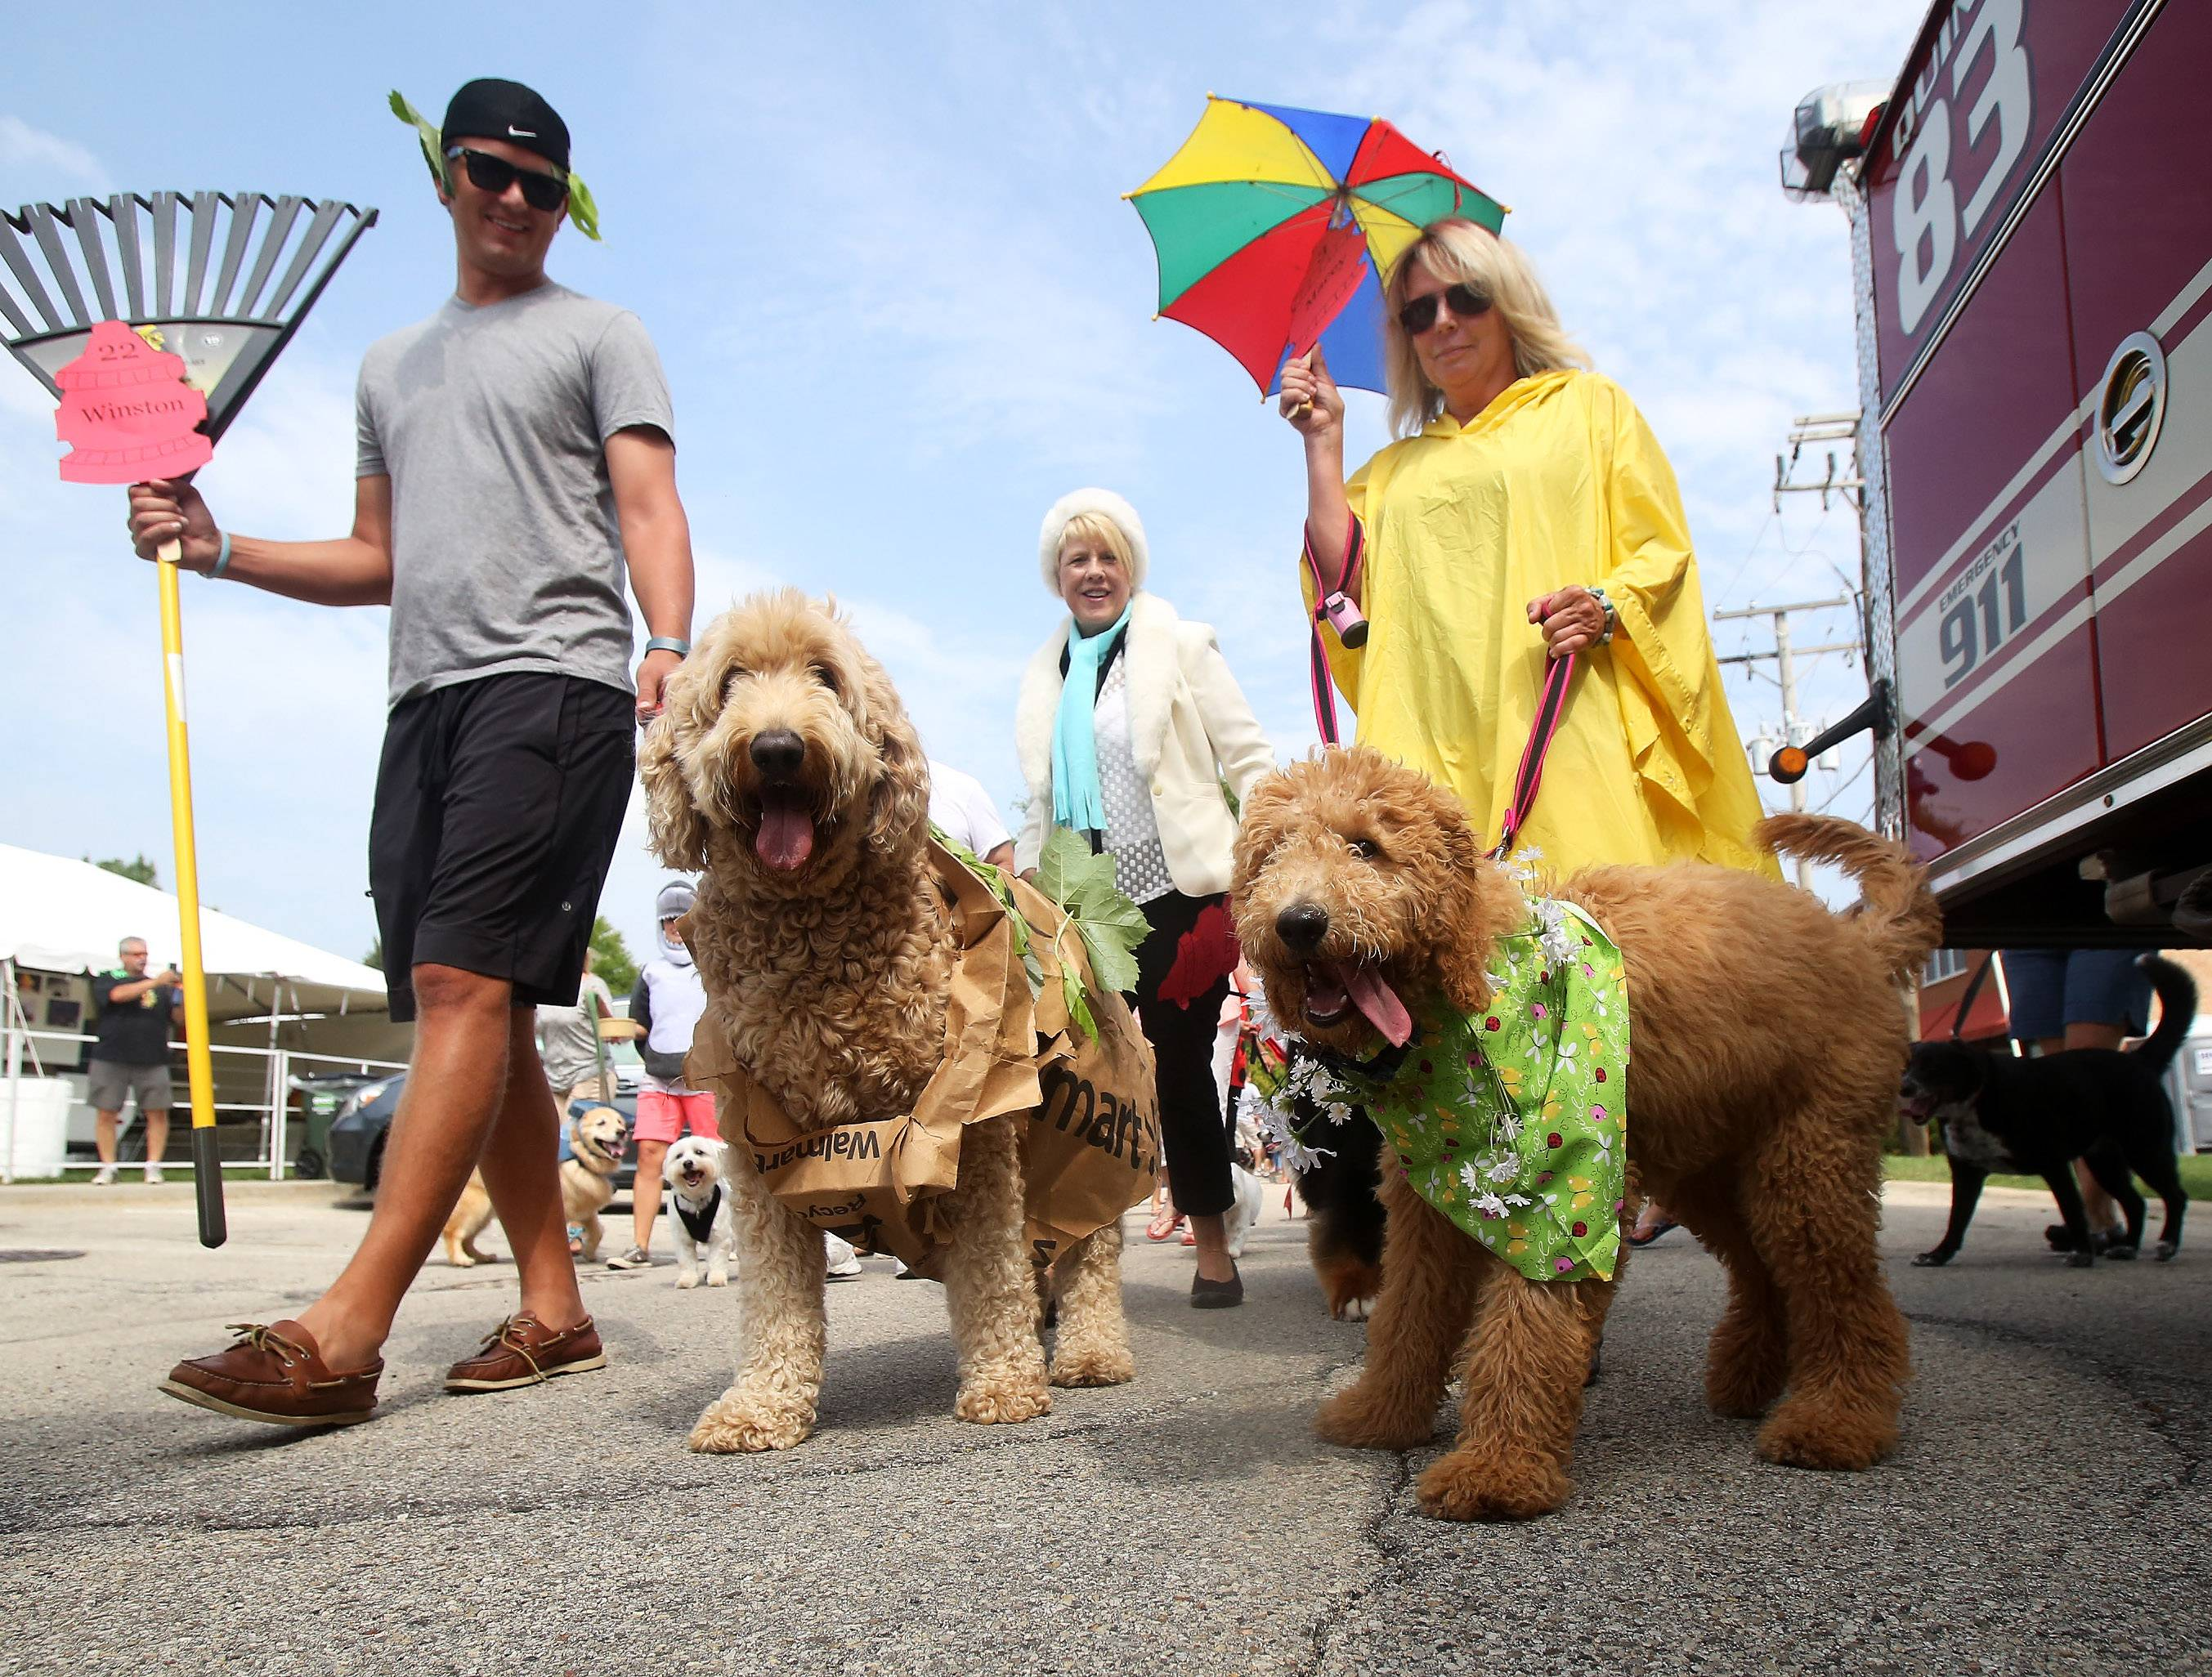 Dressed as the four seasons, Brad Rathe of Deer Park, left, walks with Winston, and Cheryl Rathe marches with Macey, during the annual Sweet Pea Pet Parade in downtown Palatine. More than 70 pets participated in the parade Sunday dressed in costumes ranging from sports figures to food items.